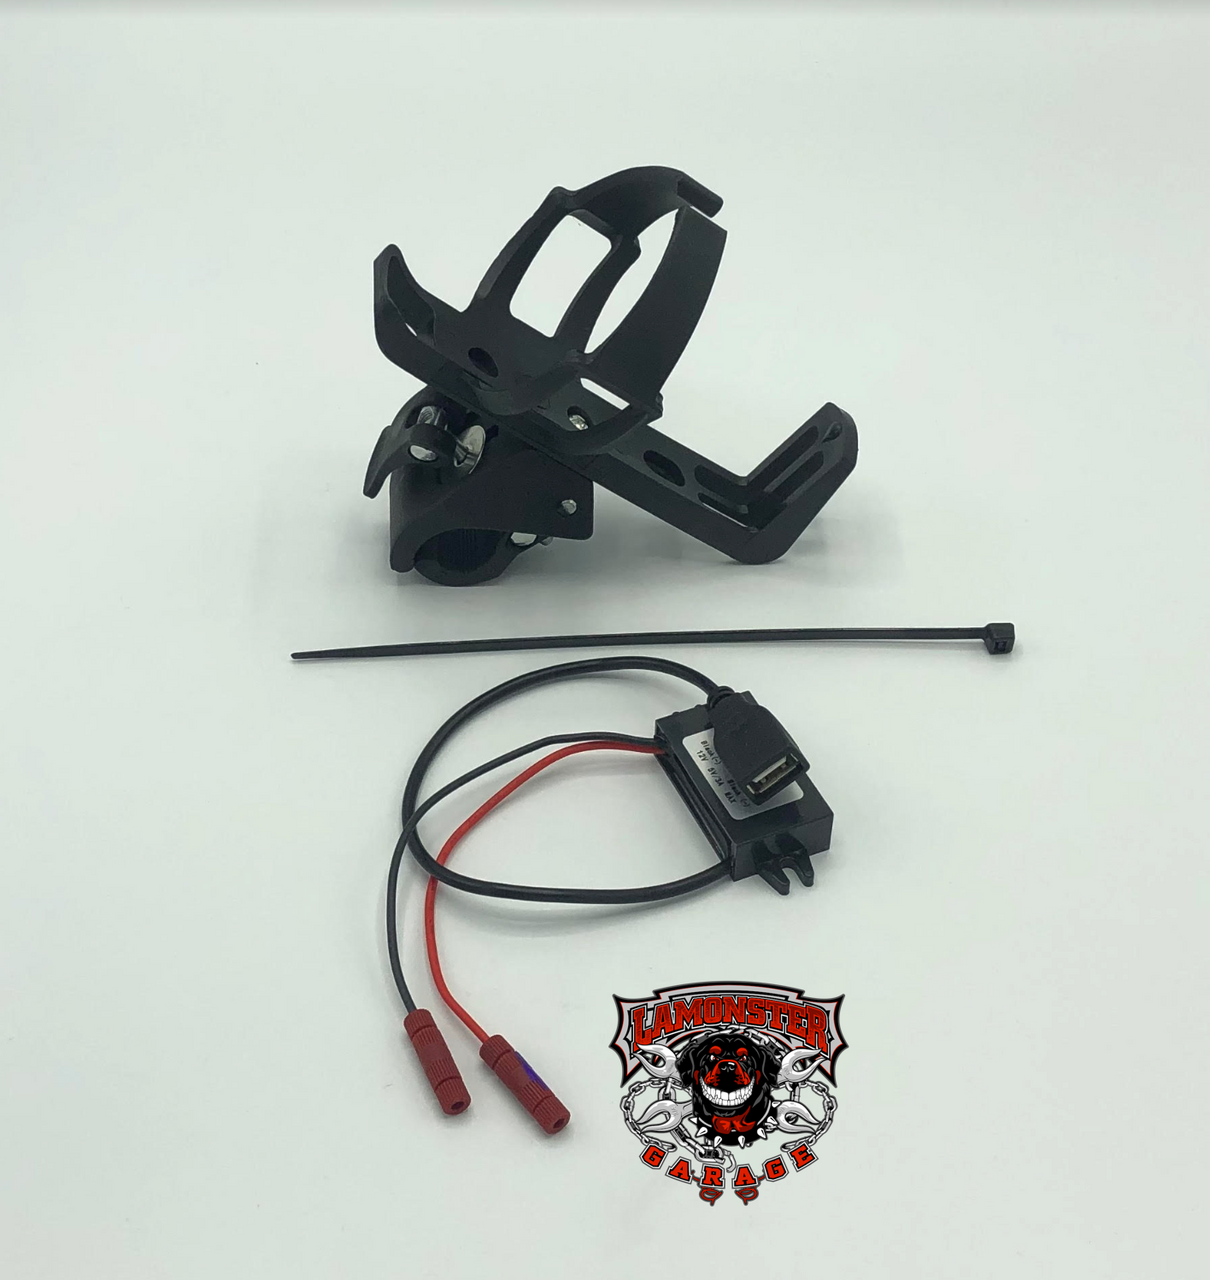 Passenger drink holder with USB power supply for the Can Am Spyder F3 Models (LG-2001-3092).